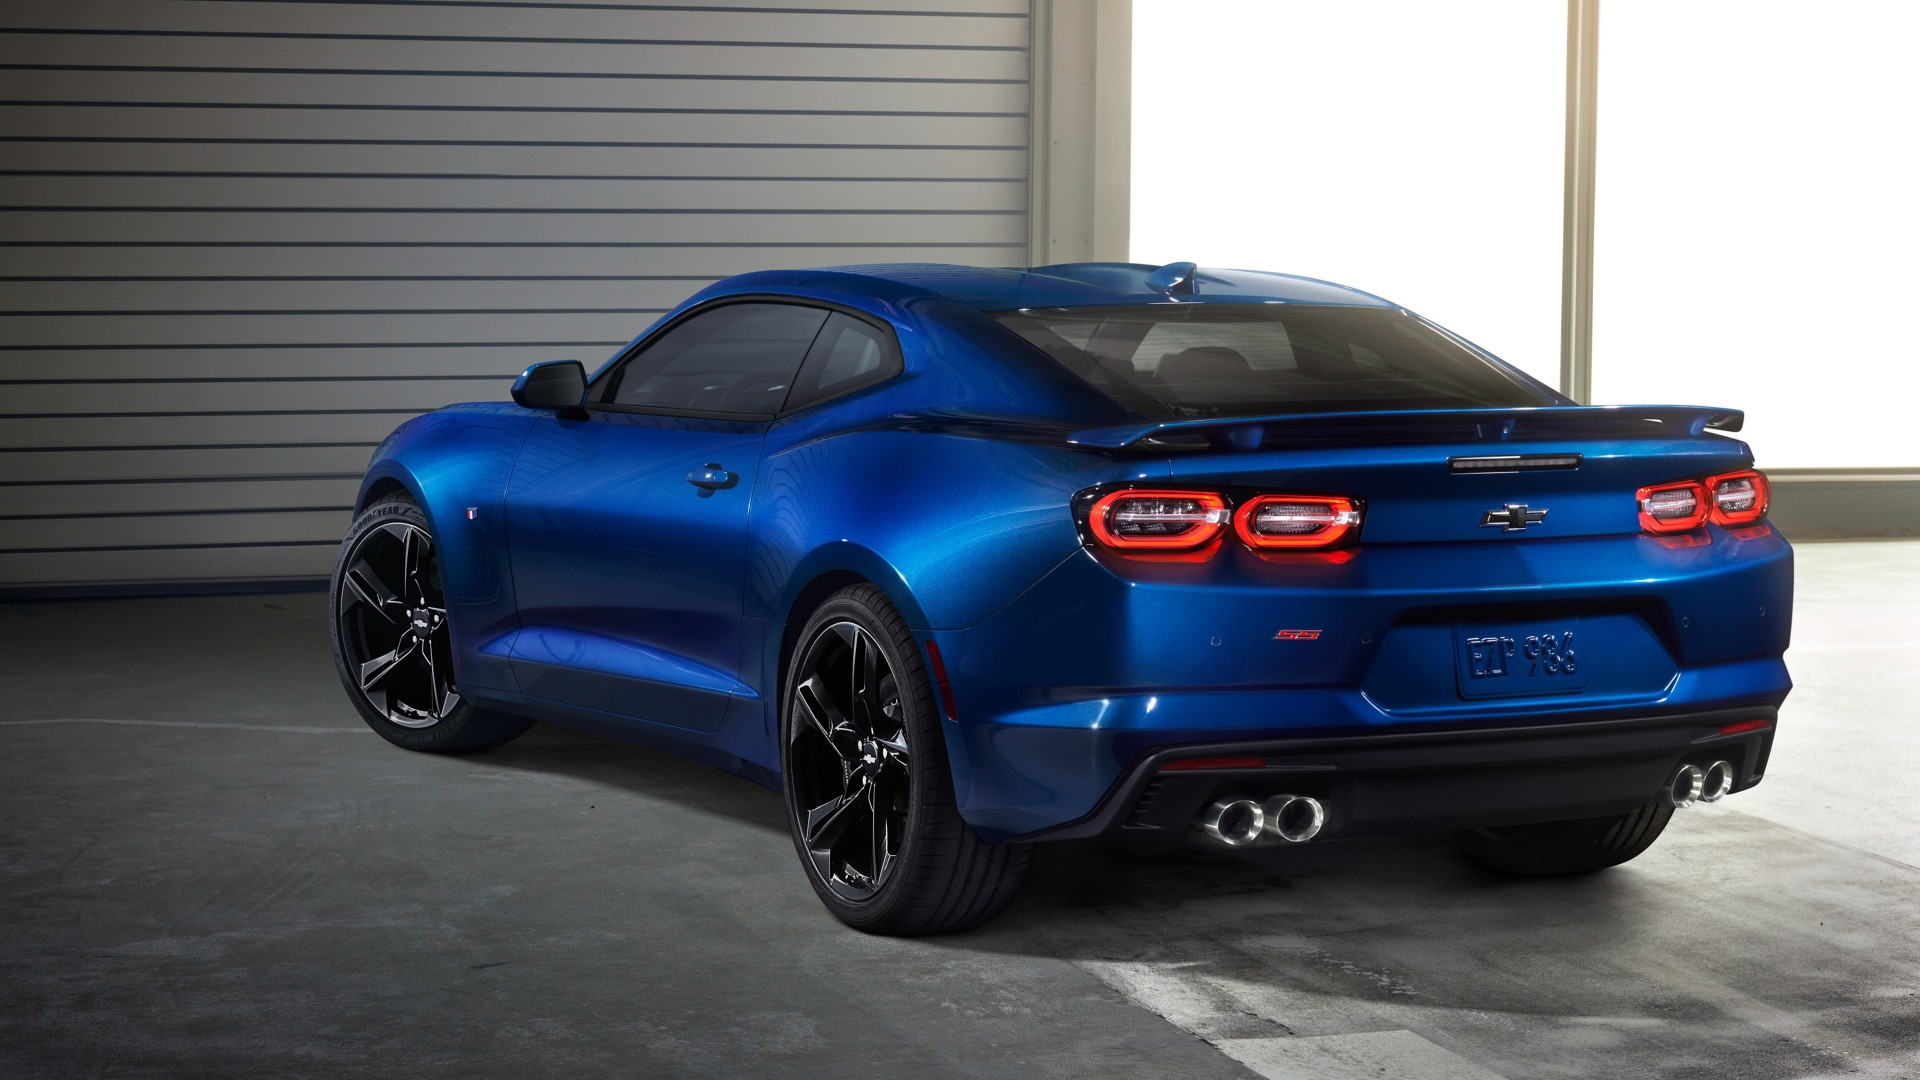 2019 Chevrolet Camaro SS 4K 2 Wallpaper | HD Car ...